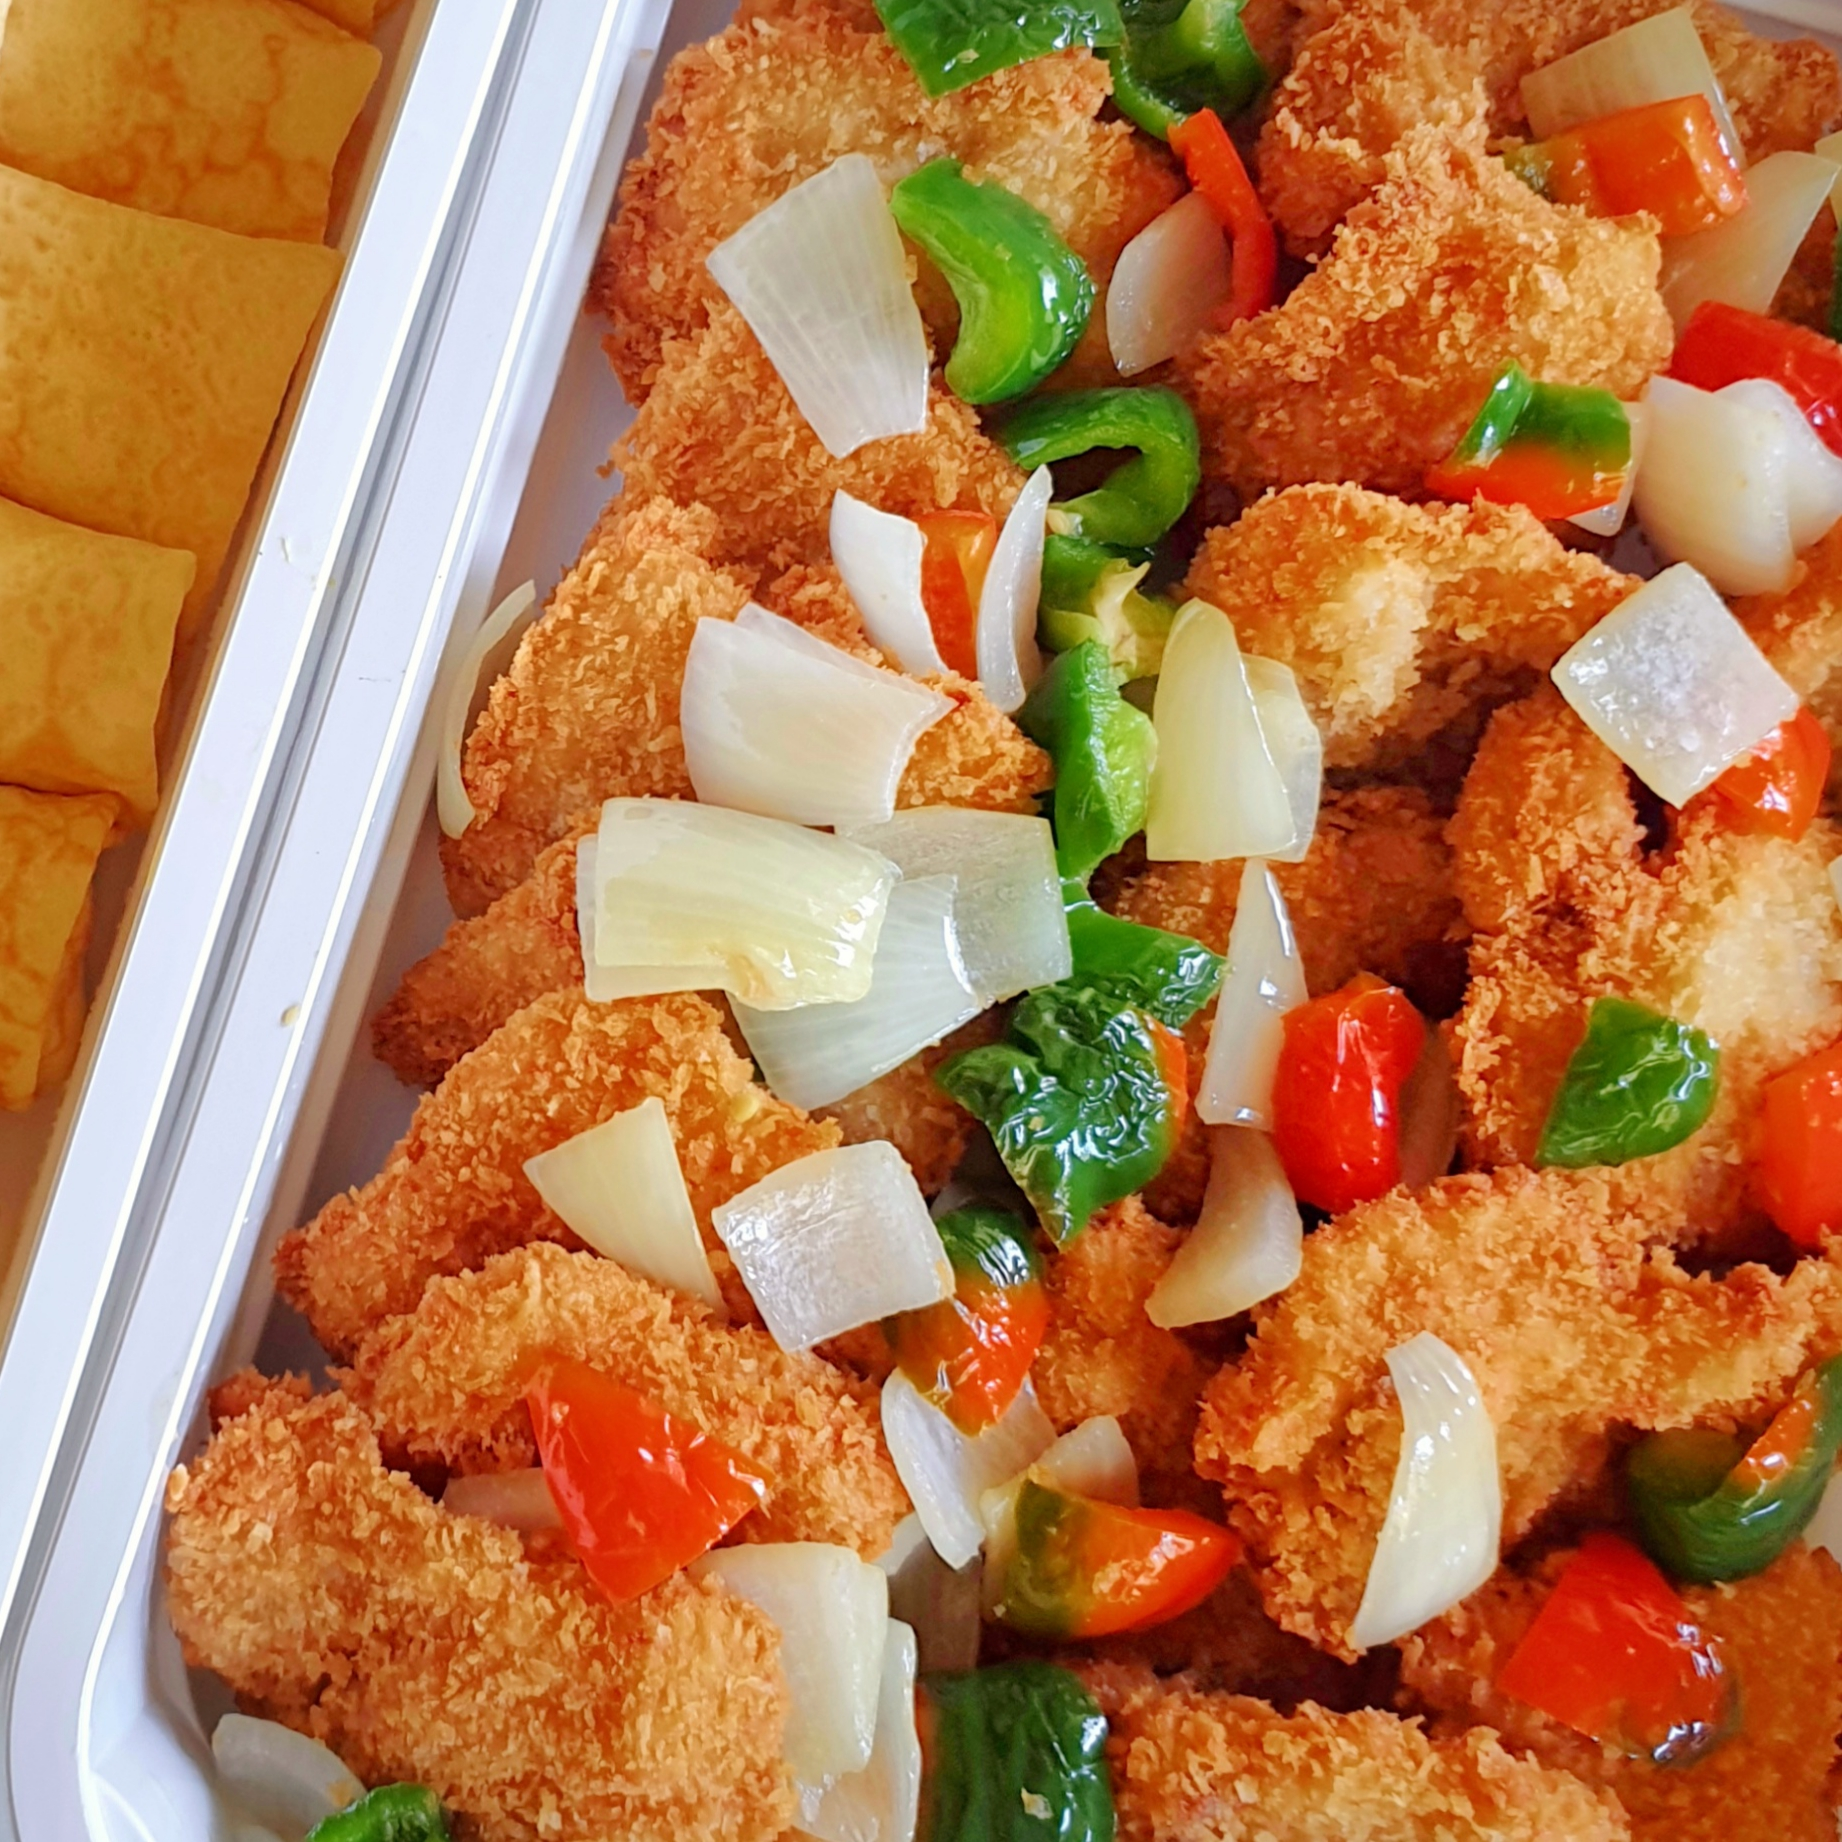 Breaded Fish fillet w/ sweet and sour sauce